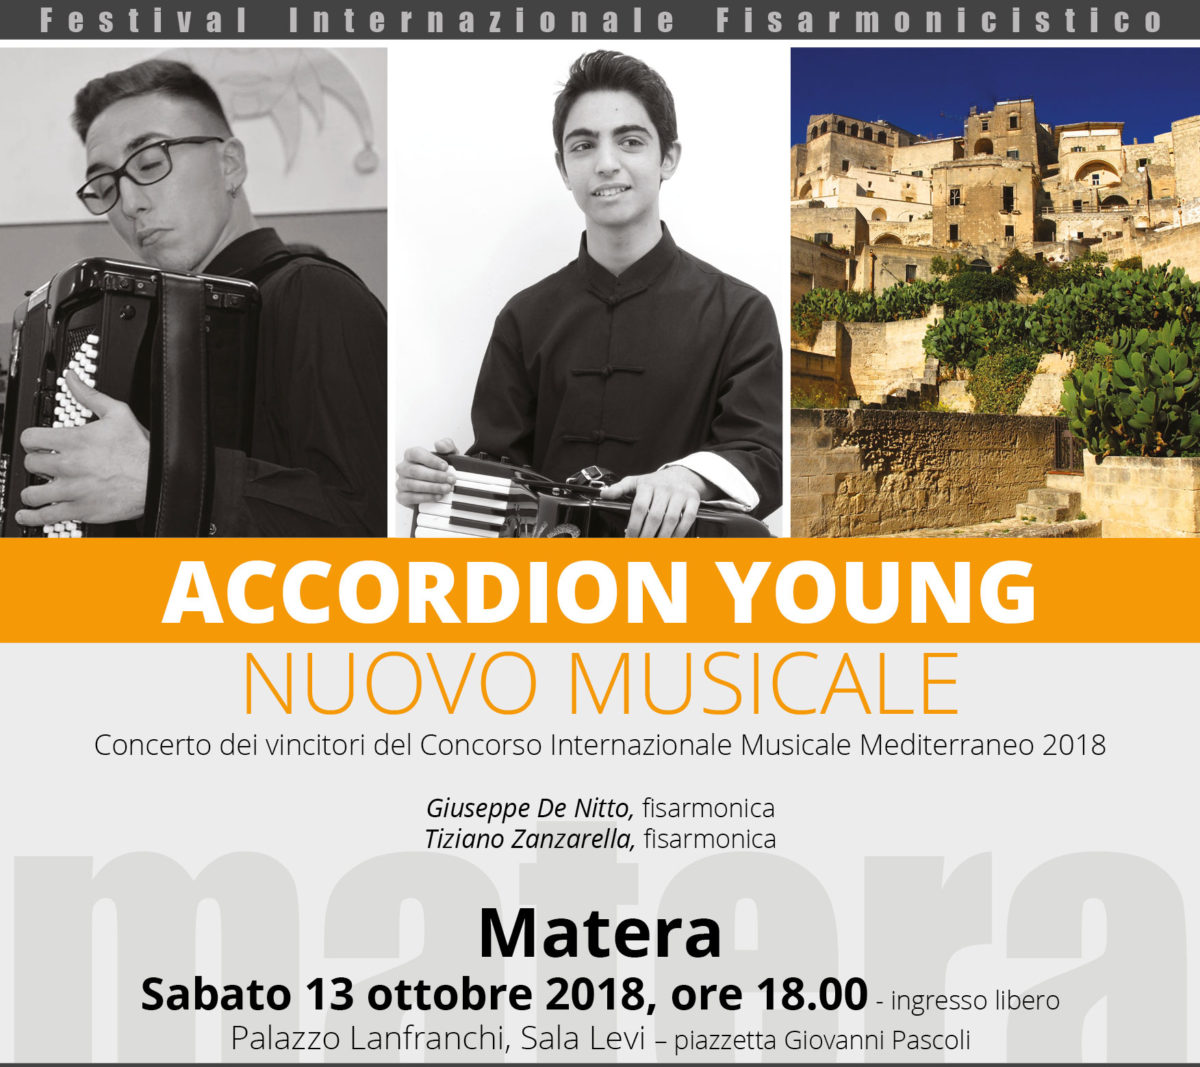 ACCORDION YOUNG – NUOVO MUSICALE